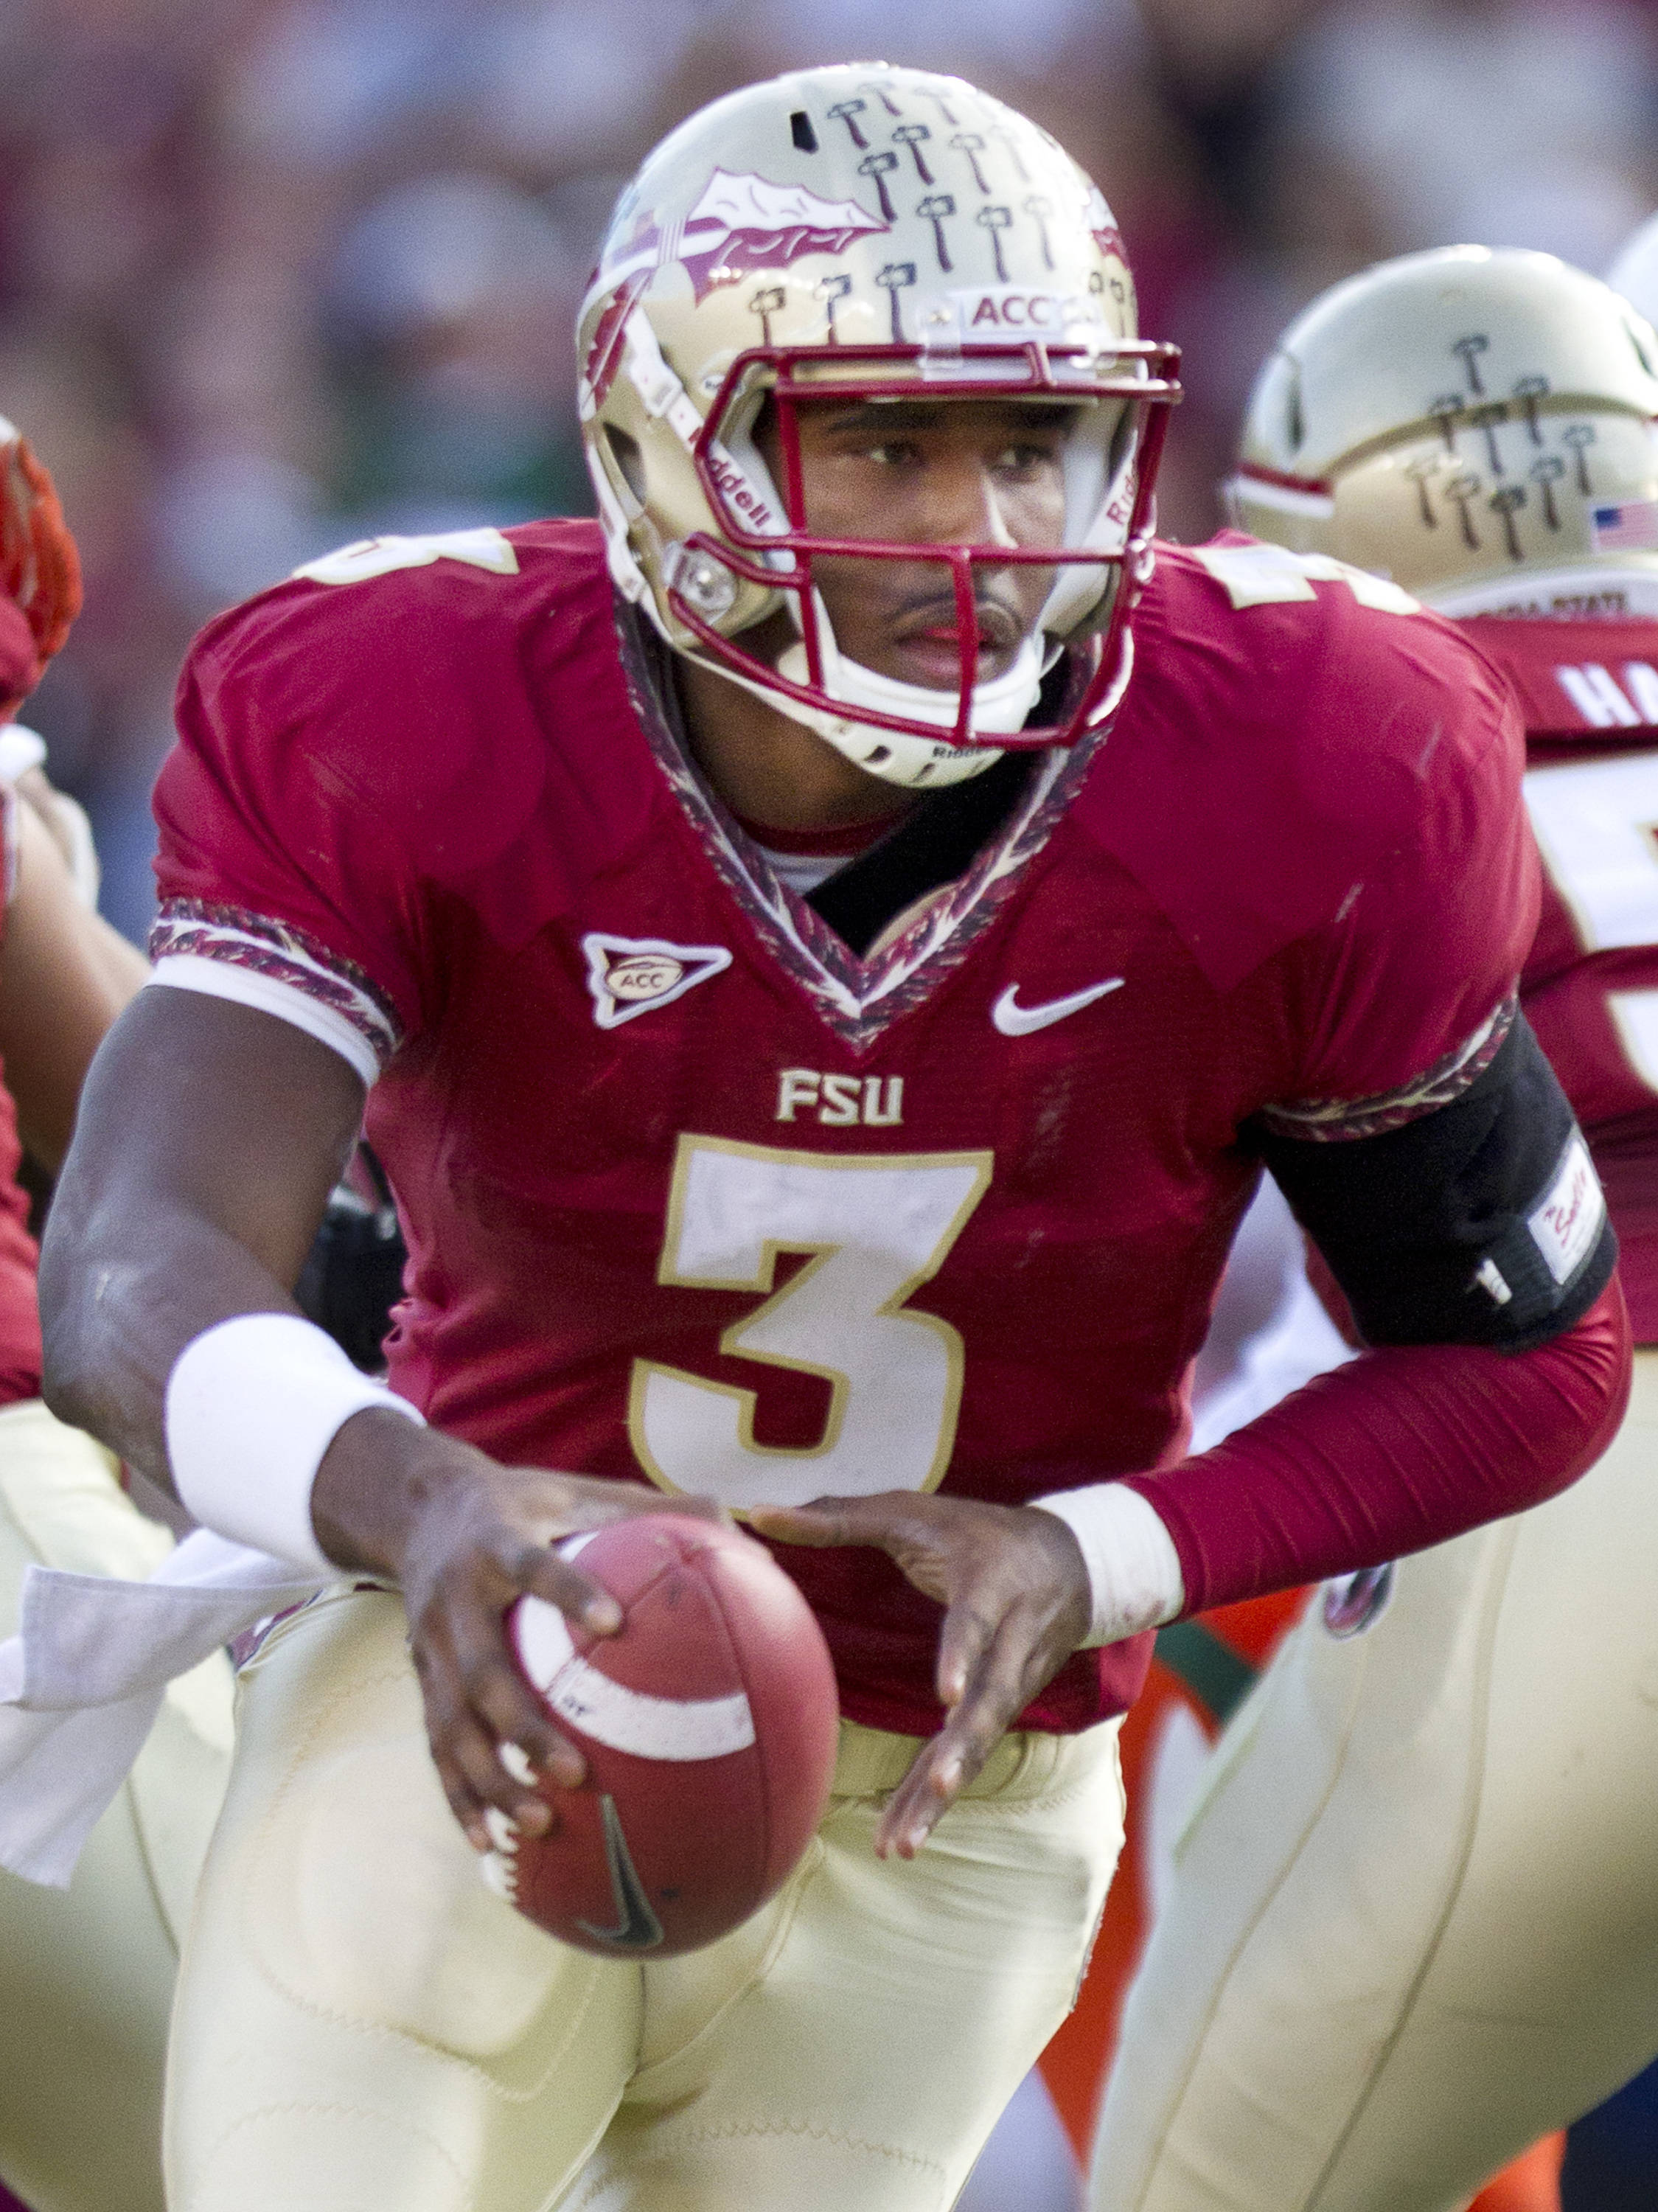 EJ Manuel (3) fakes a hand-off during the football game against Miami on November 12, 2011.